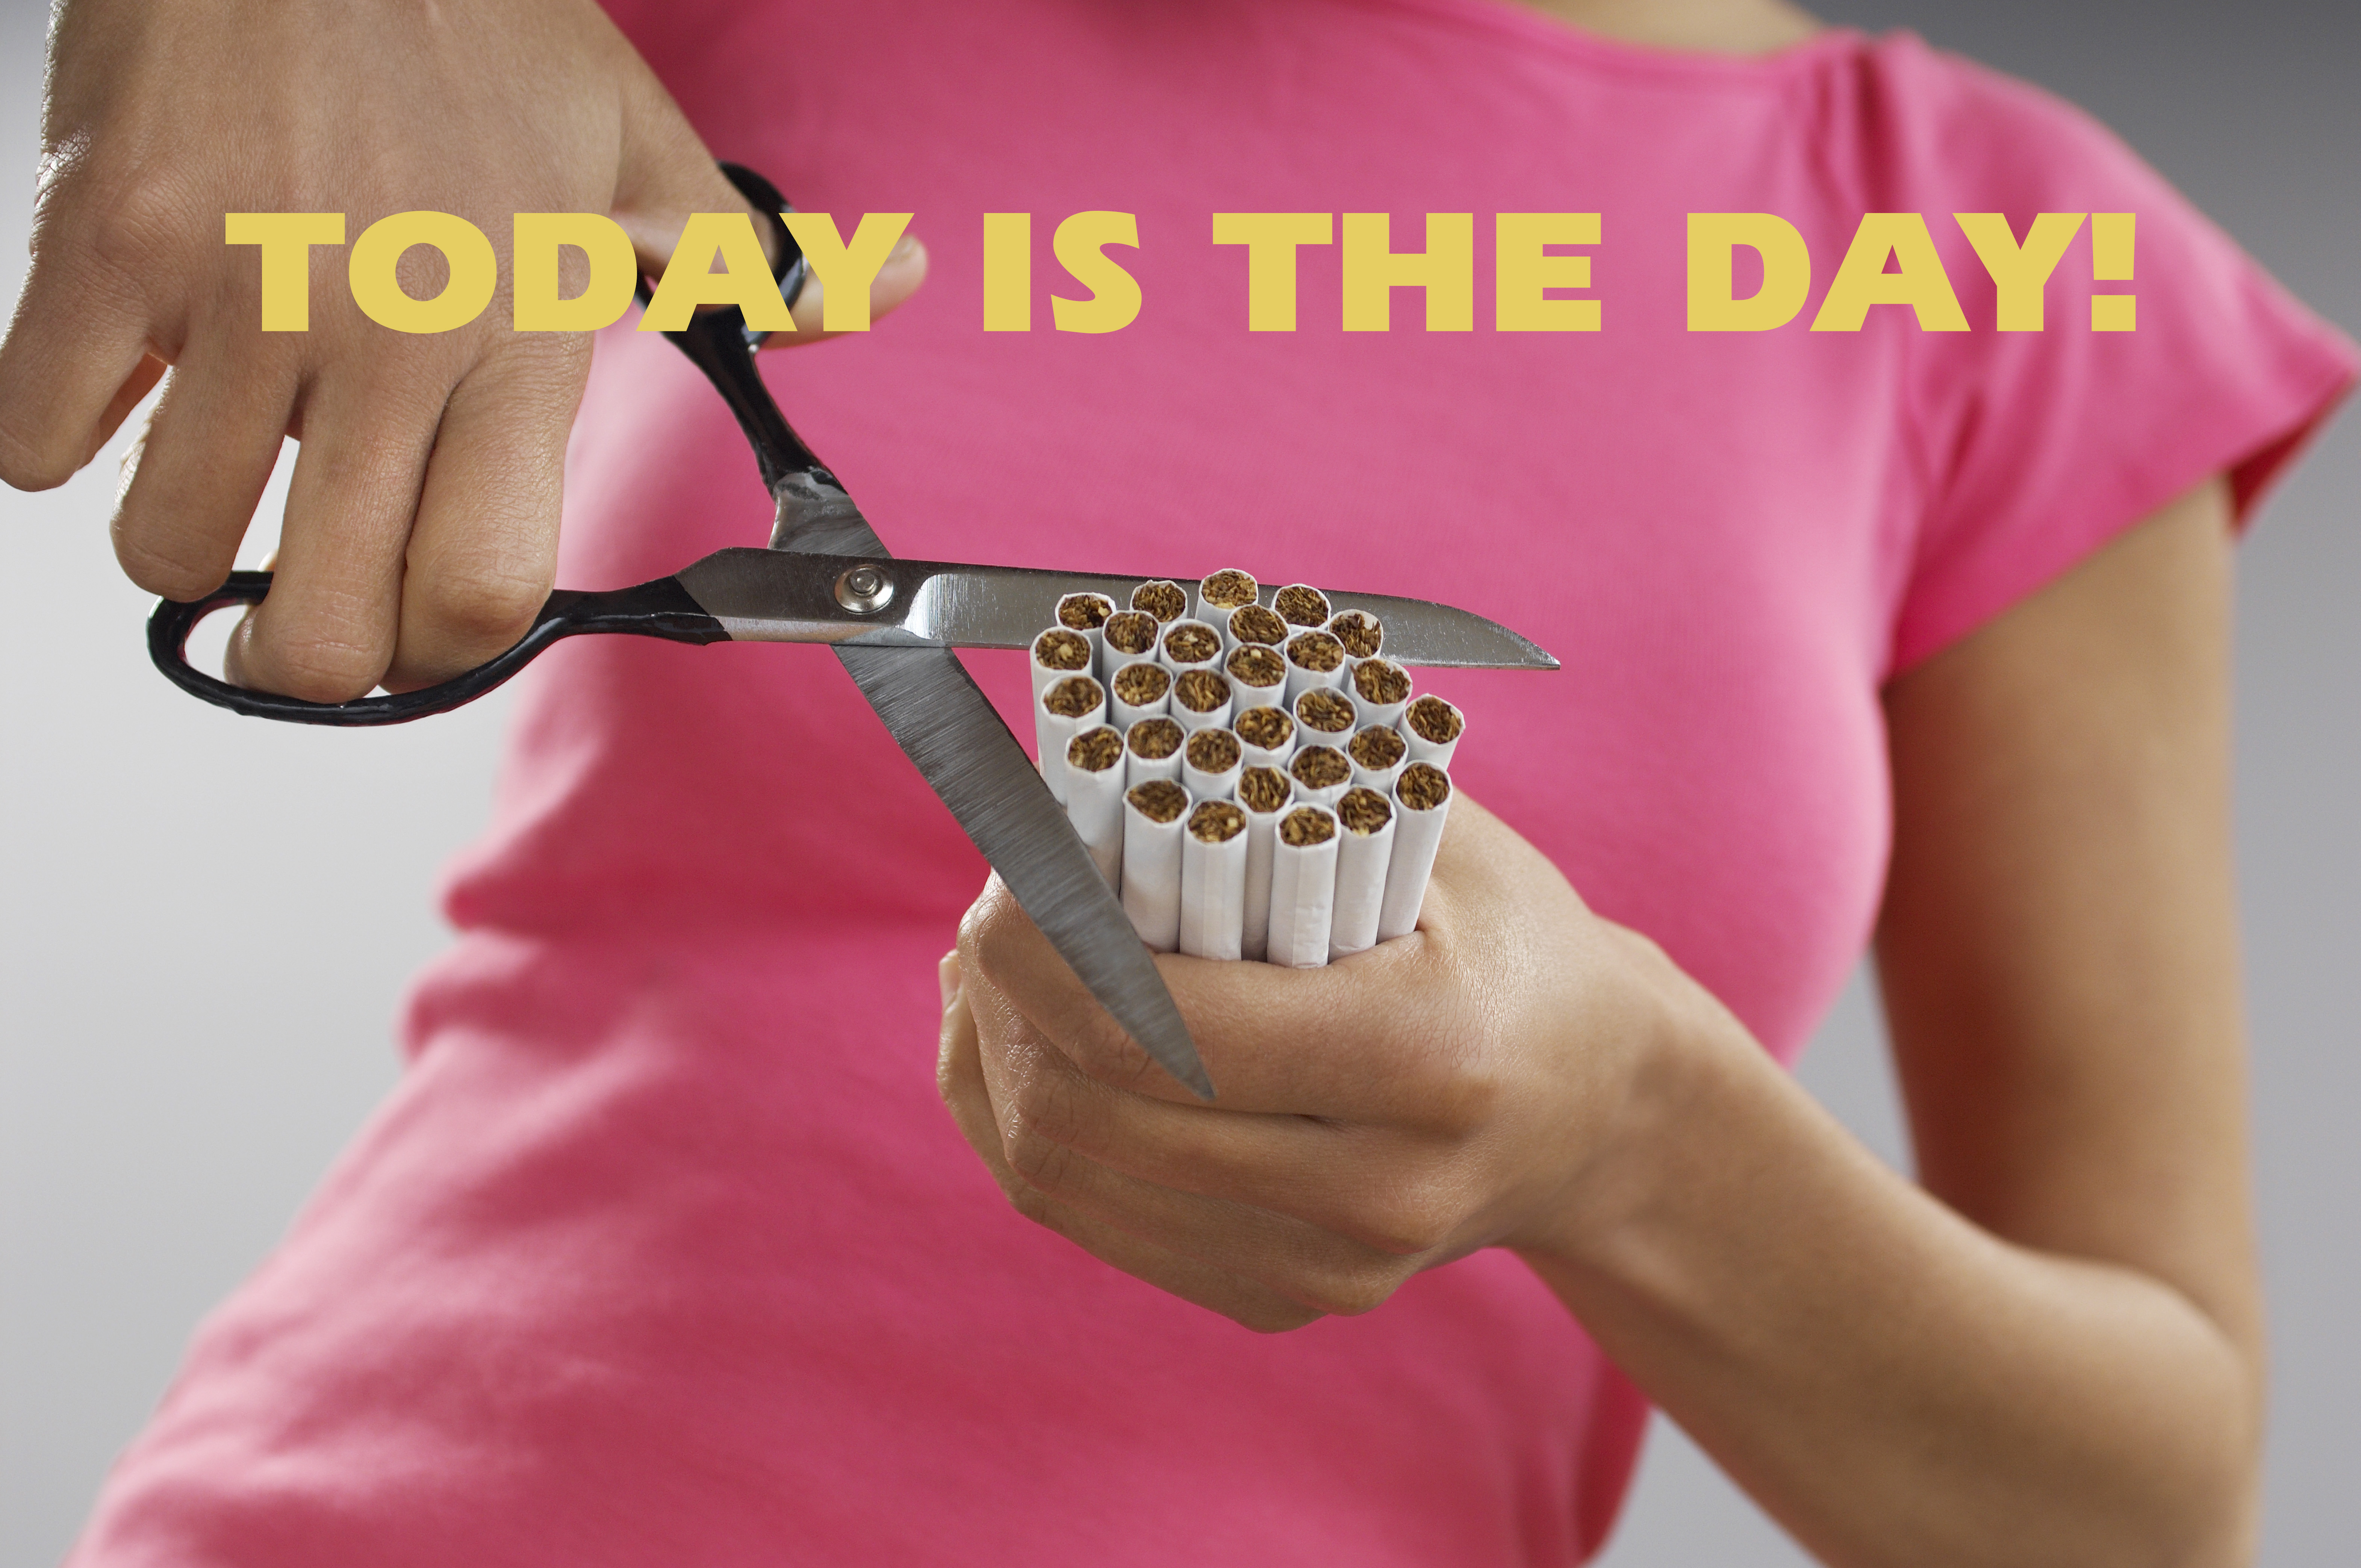 November 21 is the Great American Smokeout